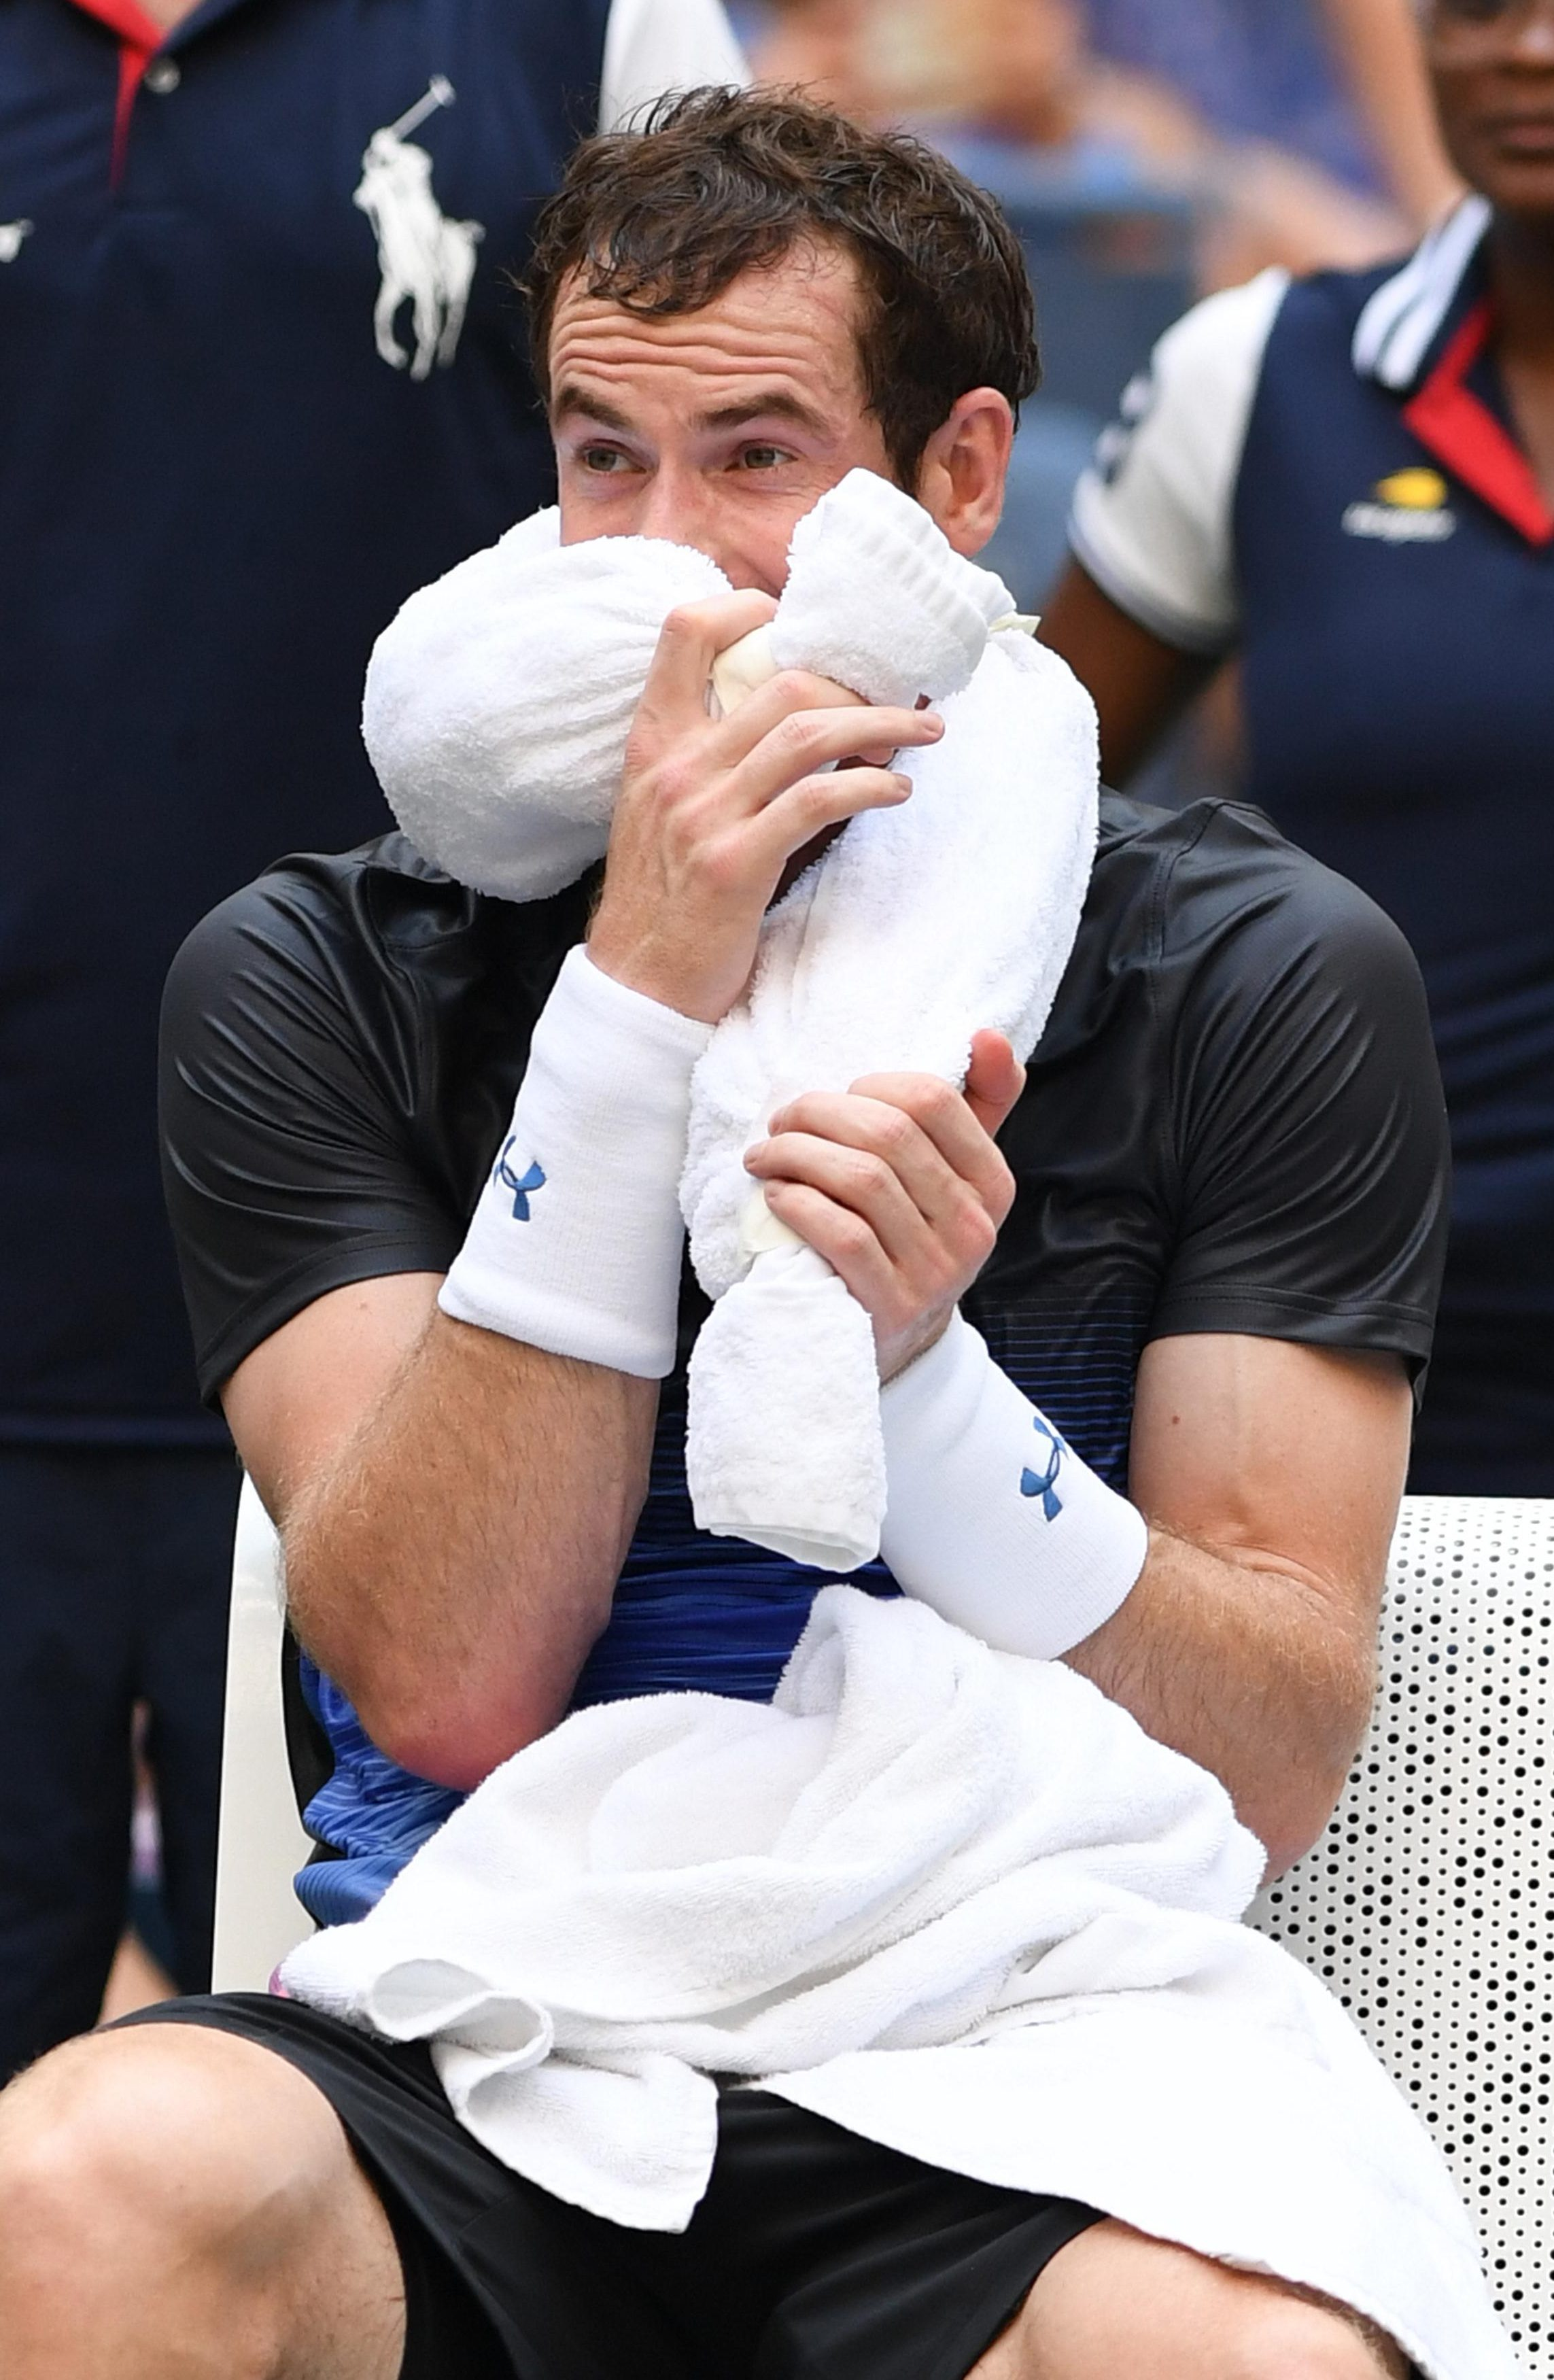 Andy Murray battled valiantly but came up short against the No 31 seed